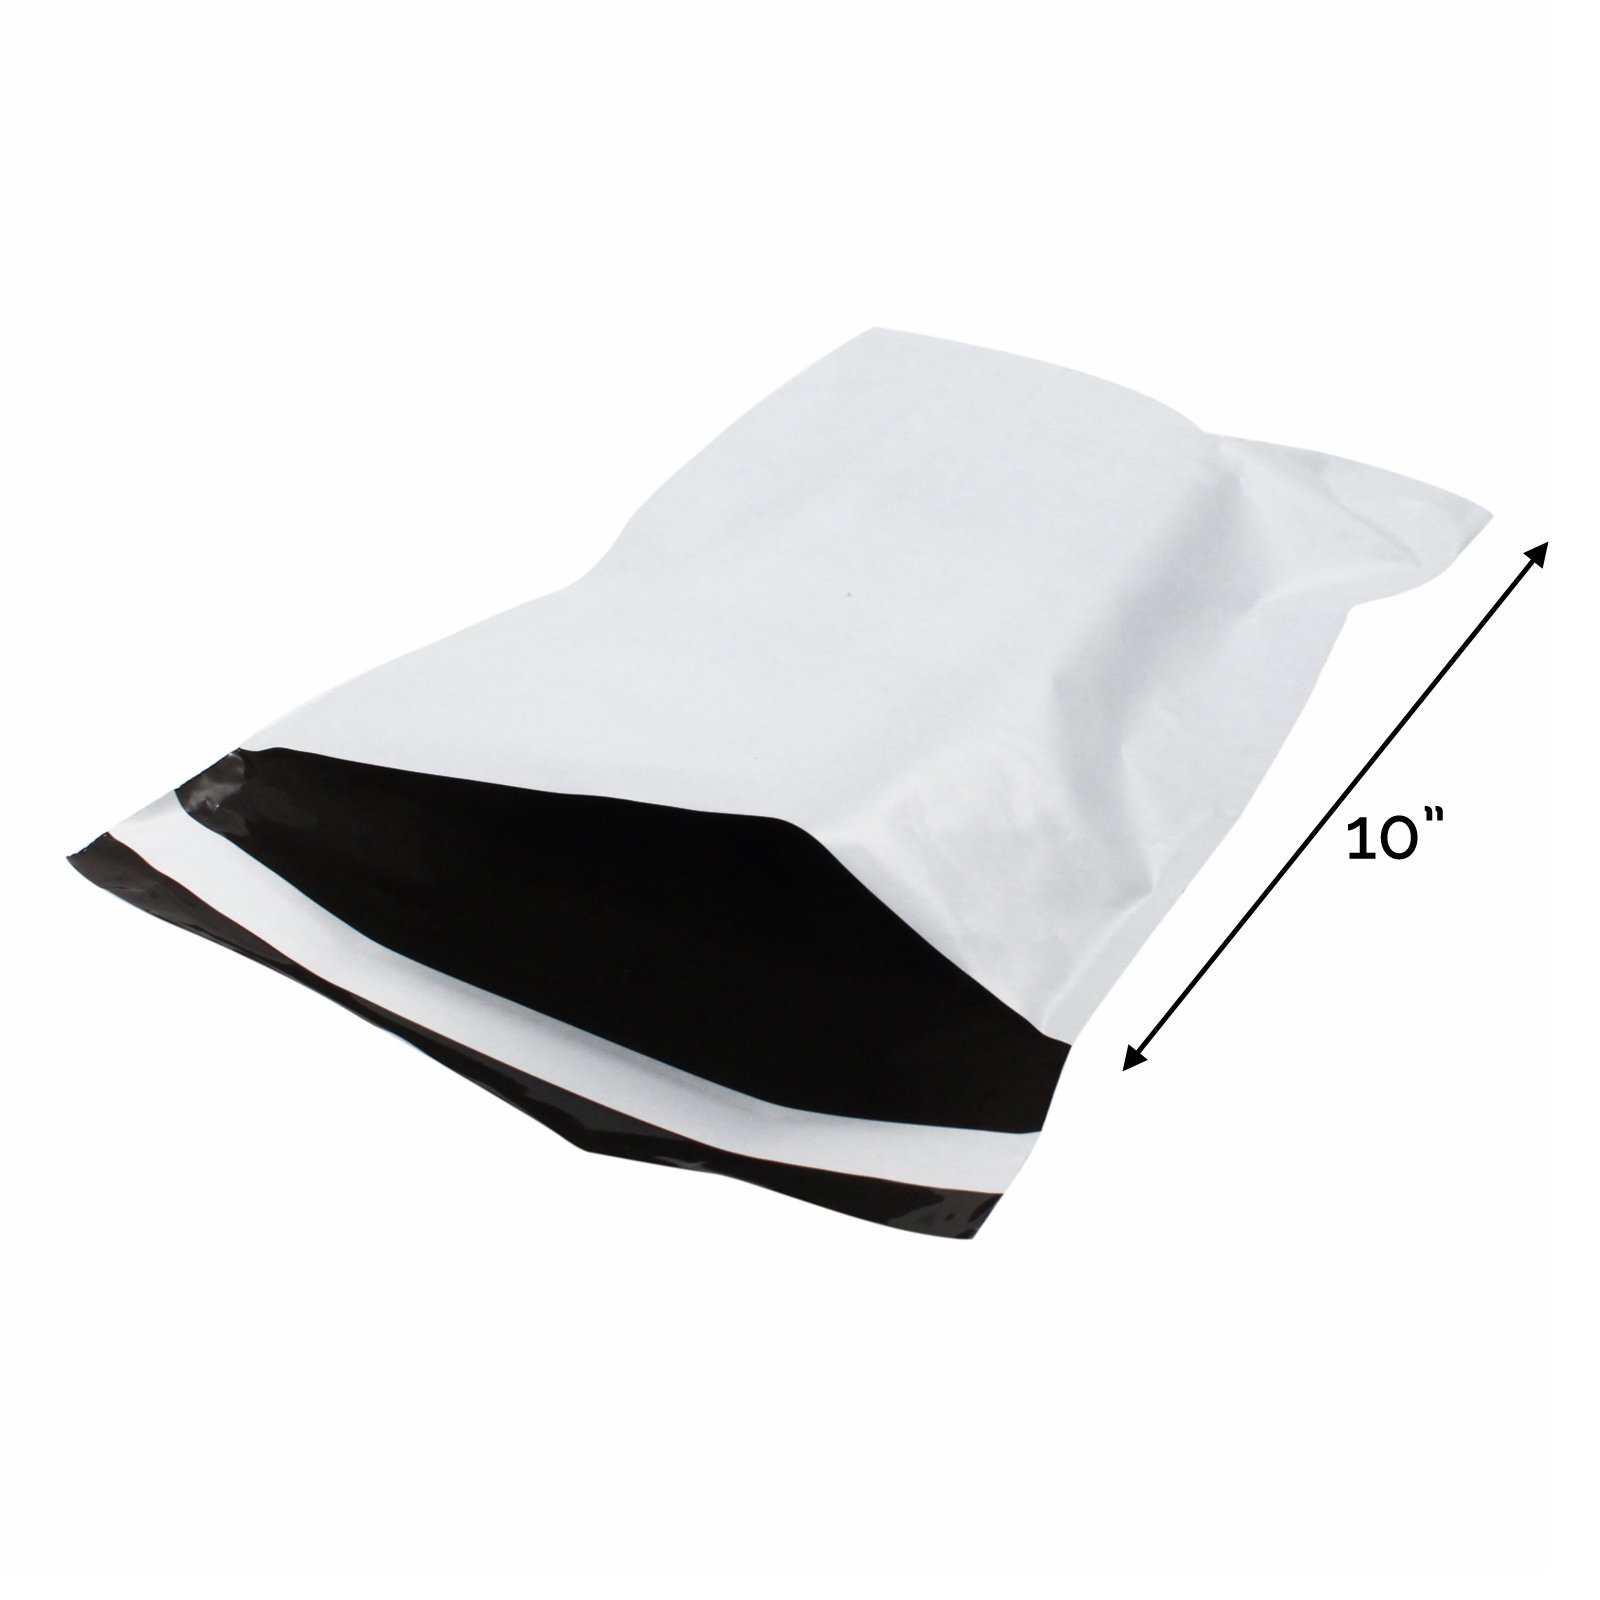 100pc Shipping Envelope Polymailer Mailers USPS Postal Bags - 7 x 10 Inch